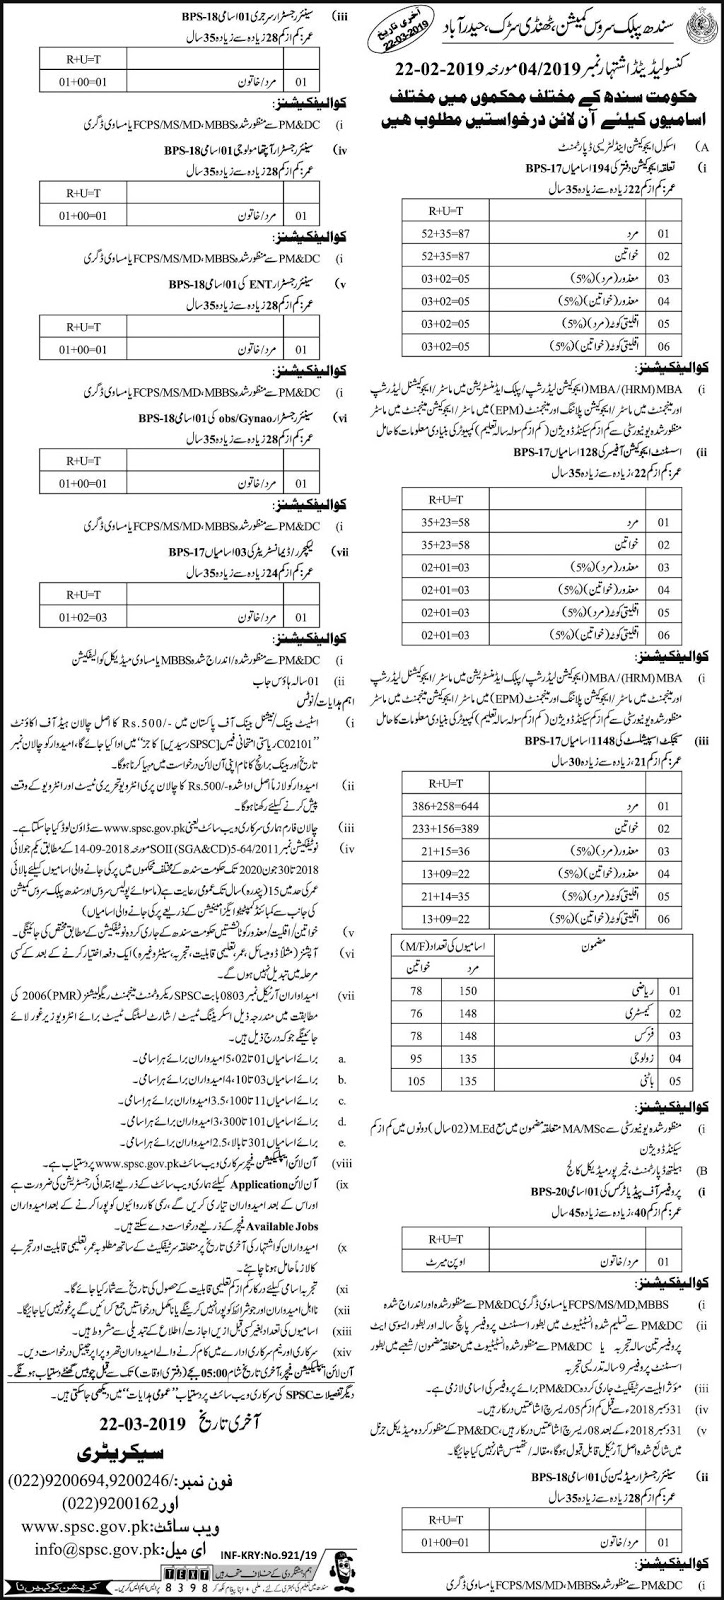 ➨ #Jobs - #Career_Opportunities - #Jobs -  So Many #Jobs in Sindh Public Service Commission, Thandi Sarak, Hyderabad –for application visit the link